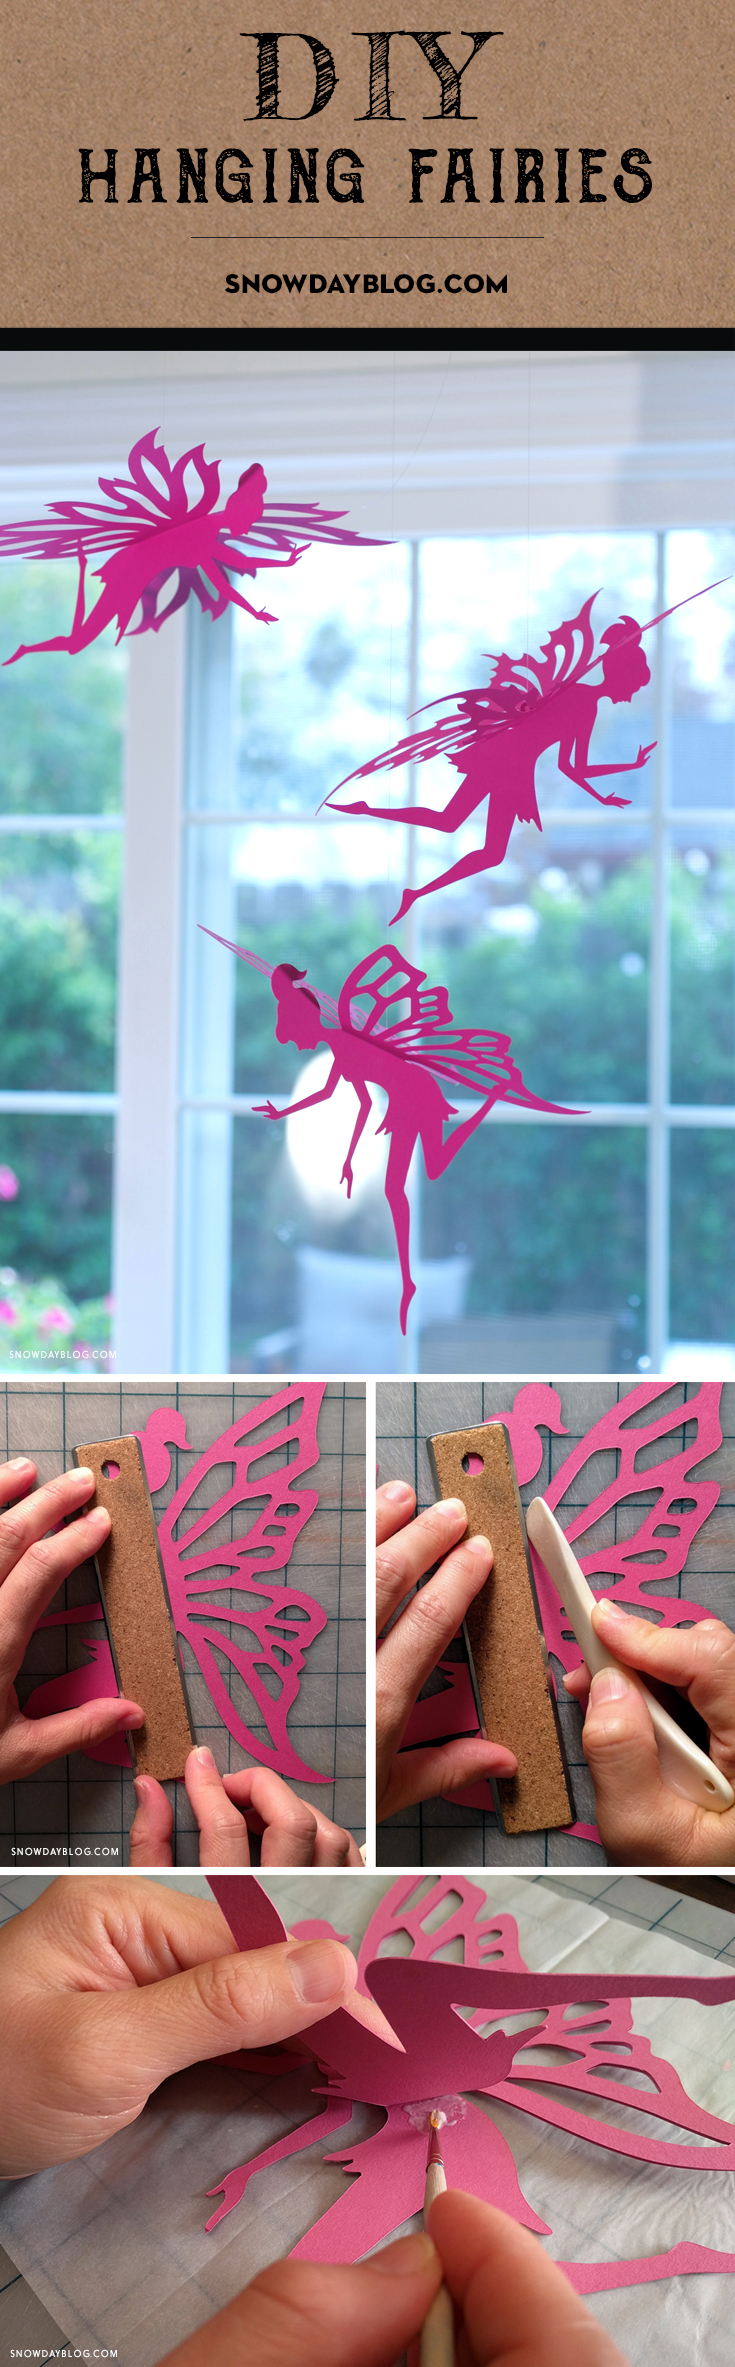 Hanging Fairies Pinterest Magenta